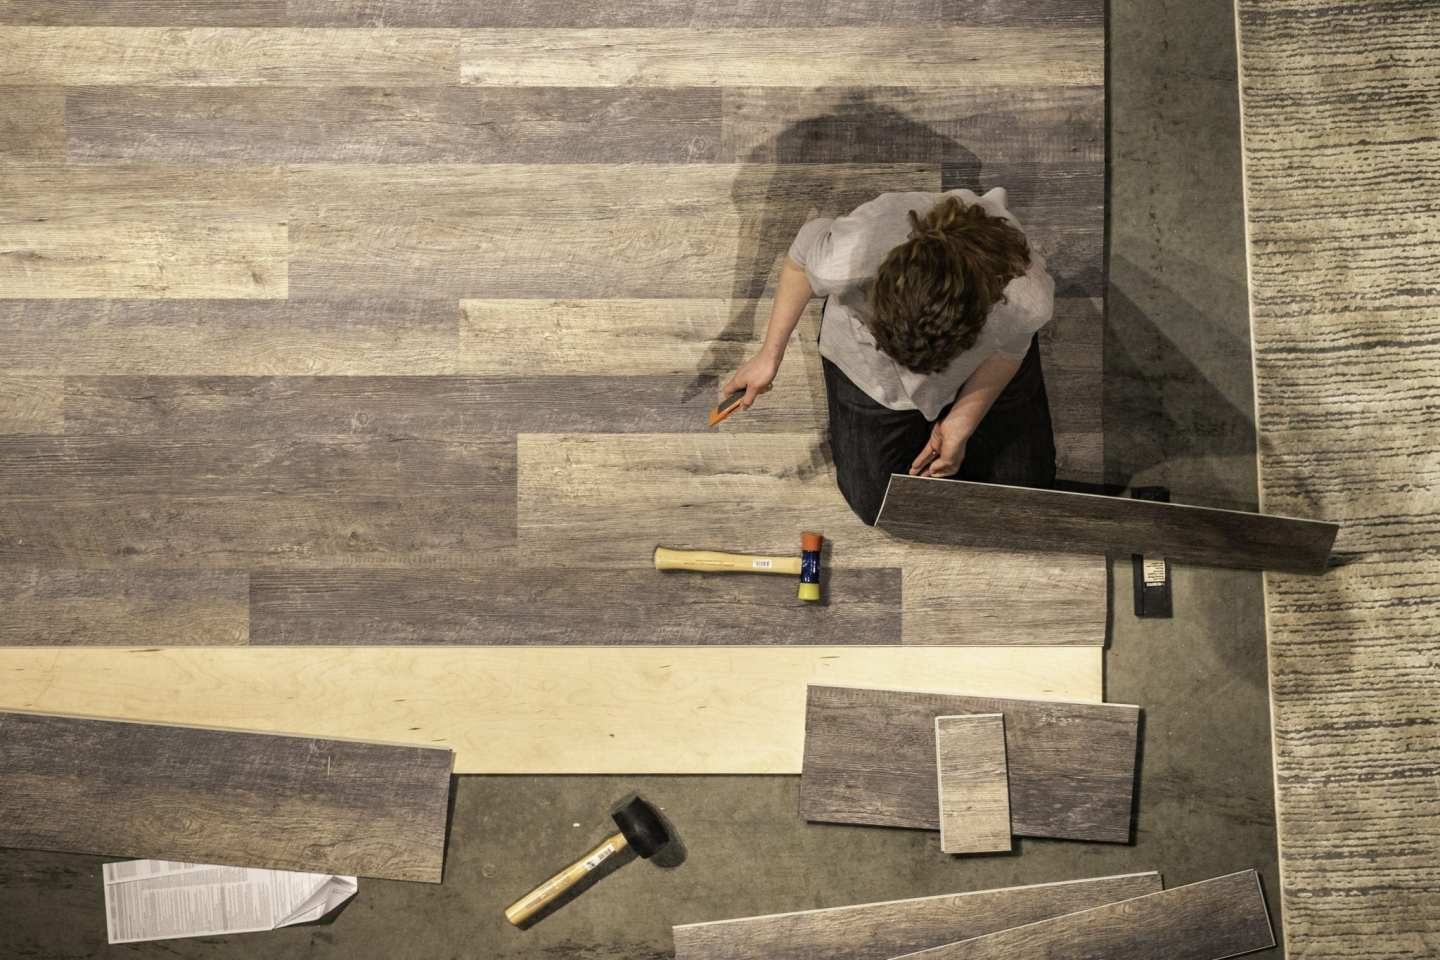 Tips for vinyl flooring that looks like hardwood and how install flooring yourself.